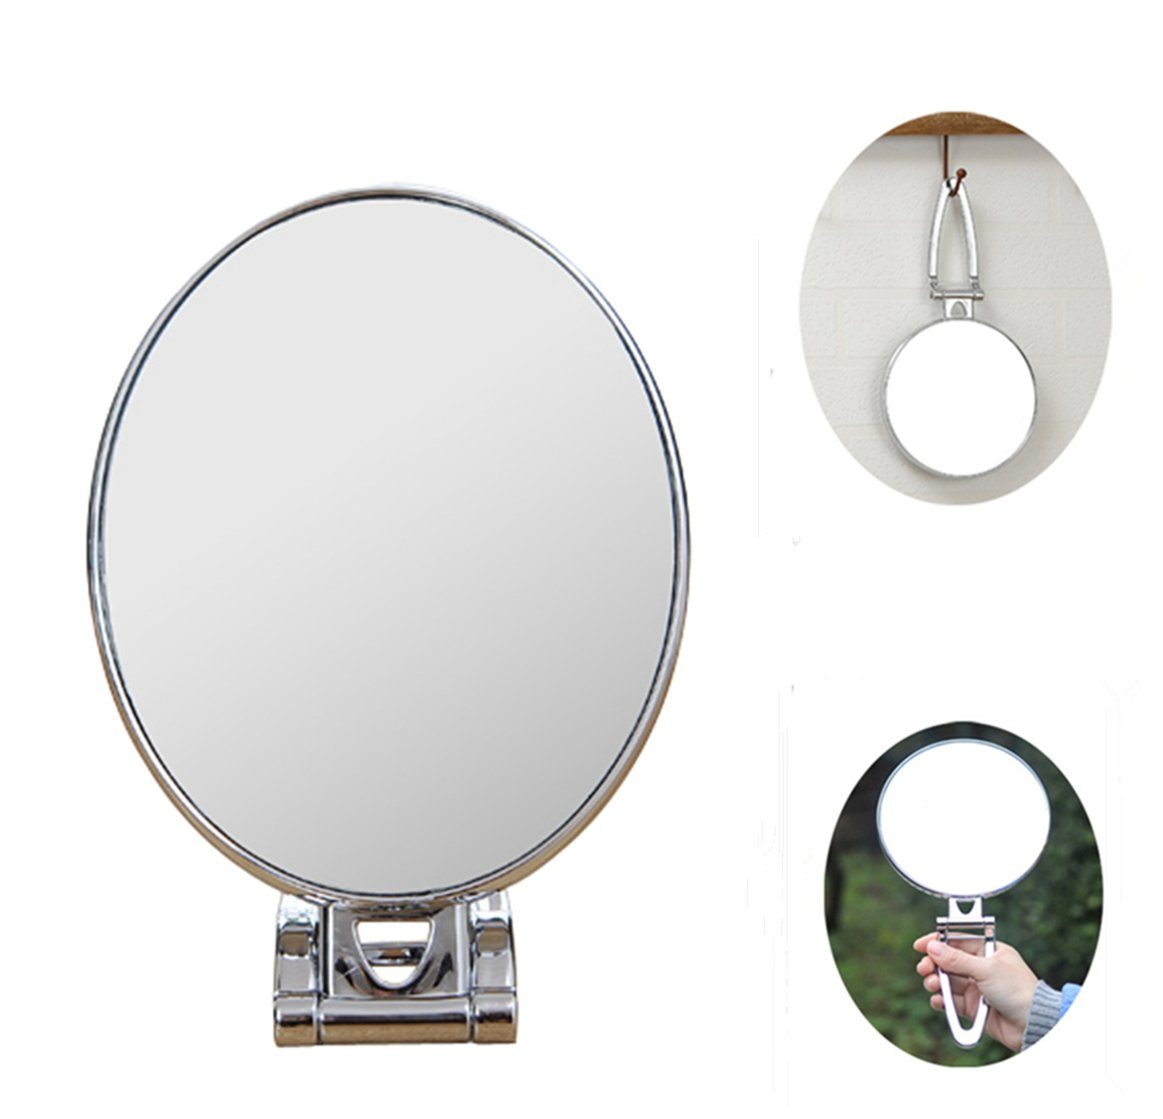 3-in-1 Makeup Mirror Doubled Sided Vanity Mirror with 3X Magnified 180 Degrees Folding Handle Travel Mirror Desktop Mirror (Oval) Kayla_Lan